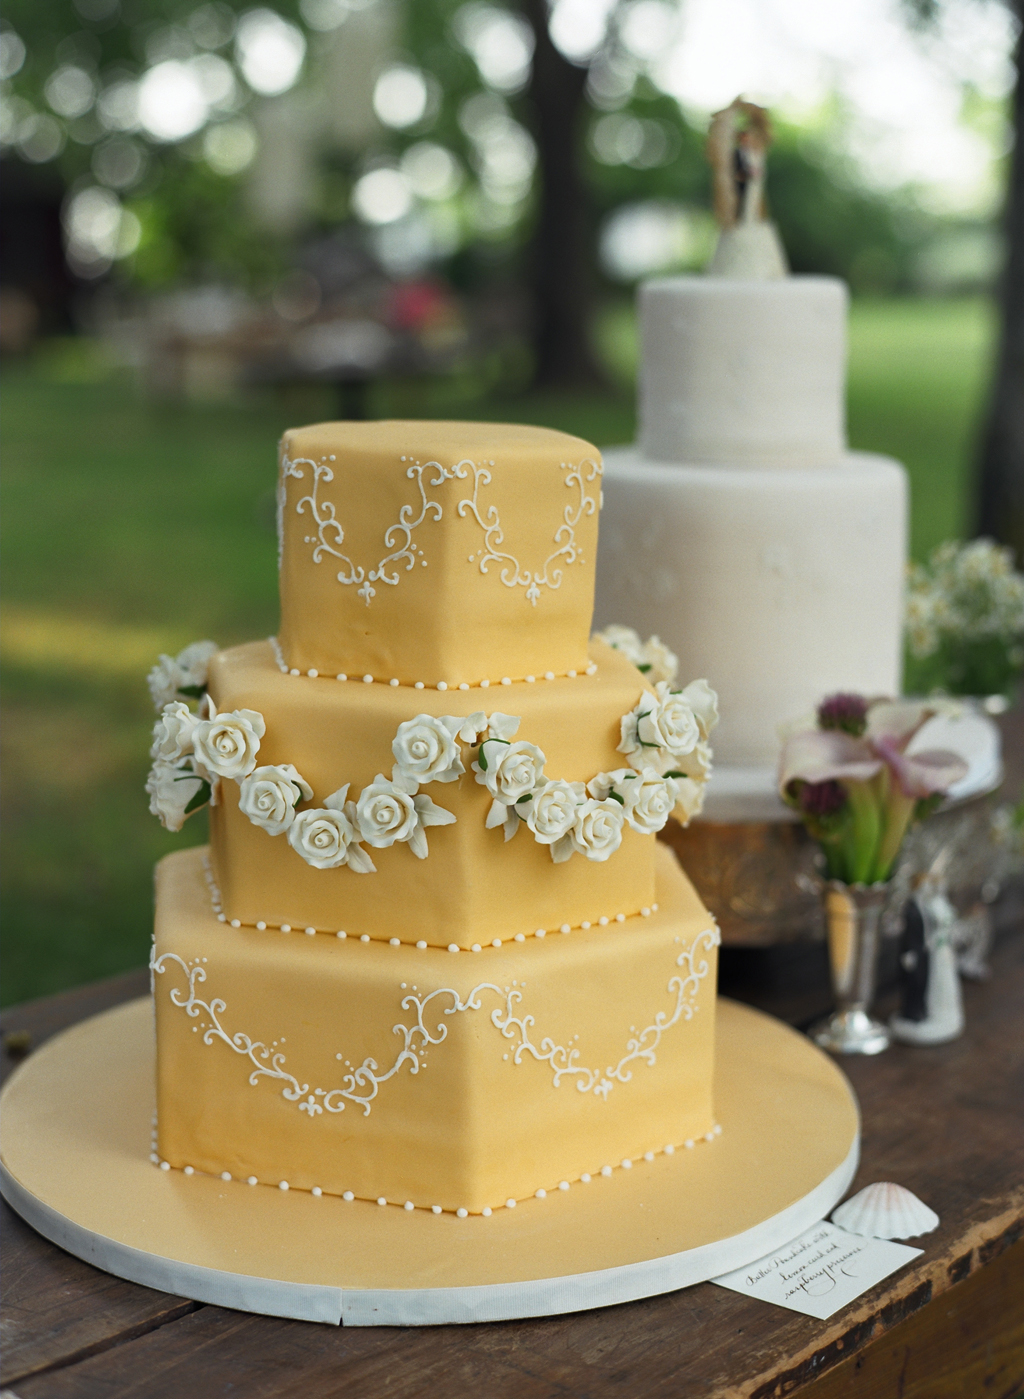 Wedding Cake Designs Vintage : EVENT DESIGN: Vintage Wedding Cake Toppers Evantine ...